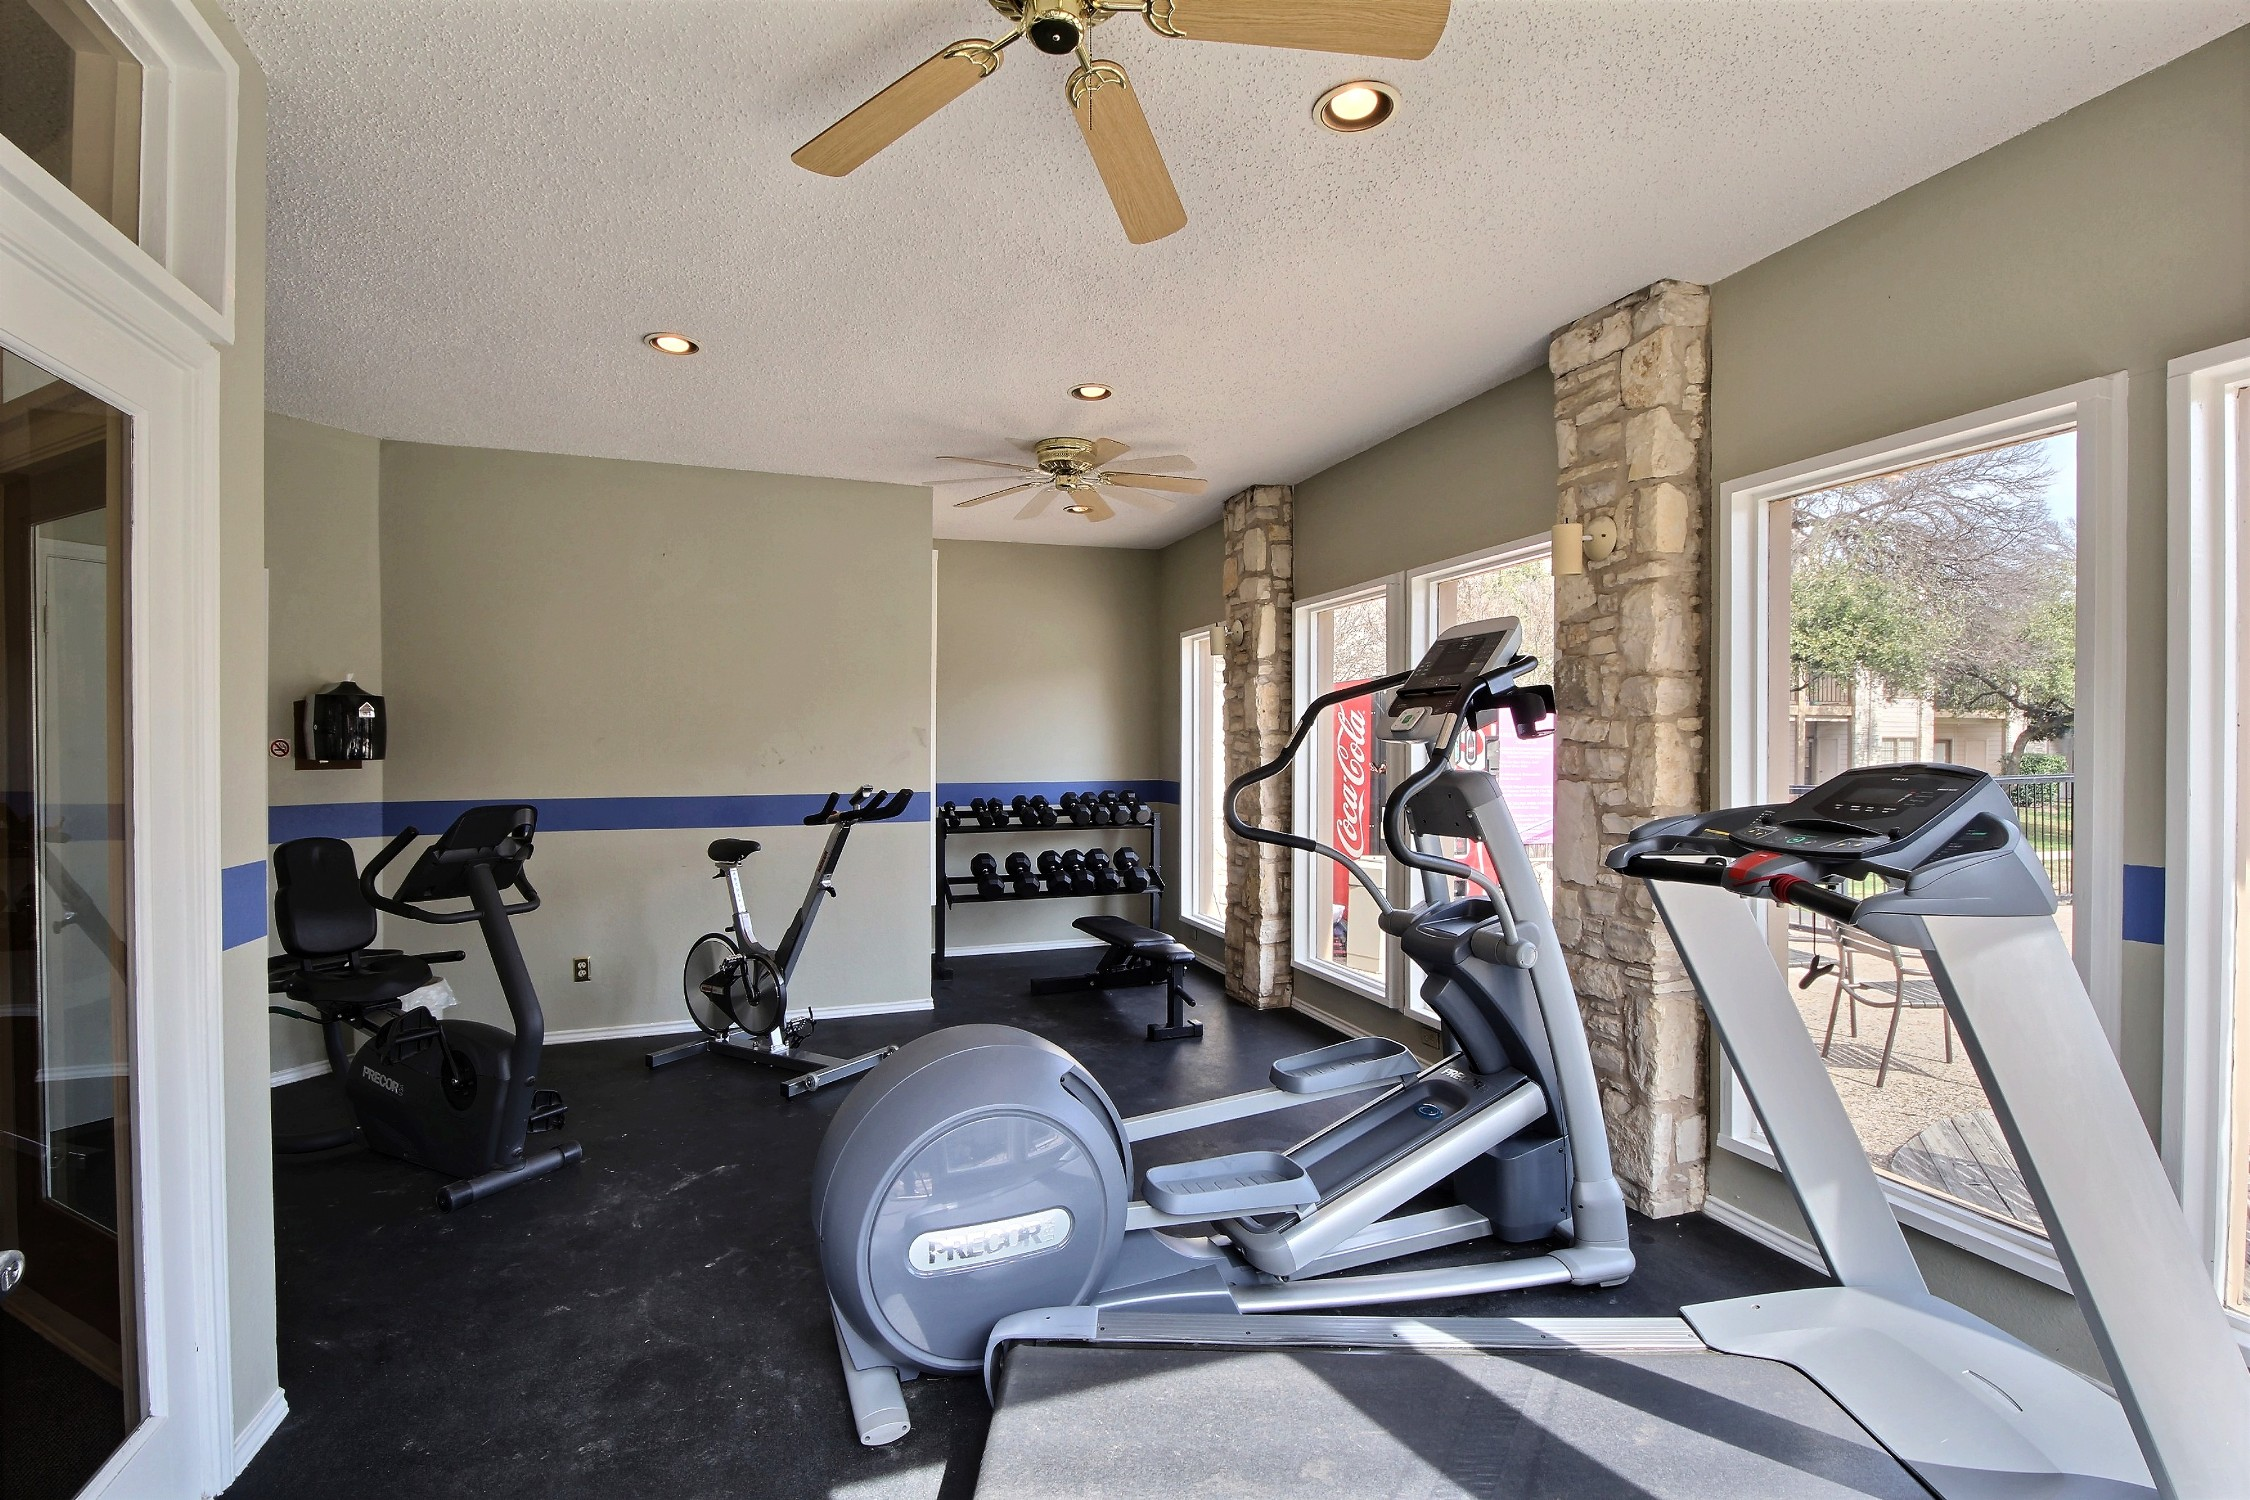 Fitness center will push you to your next level